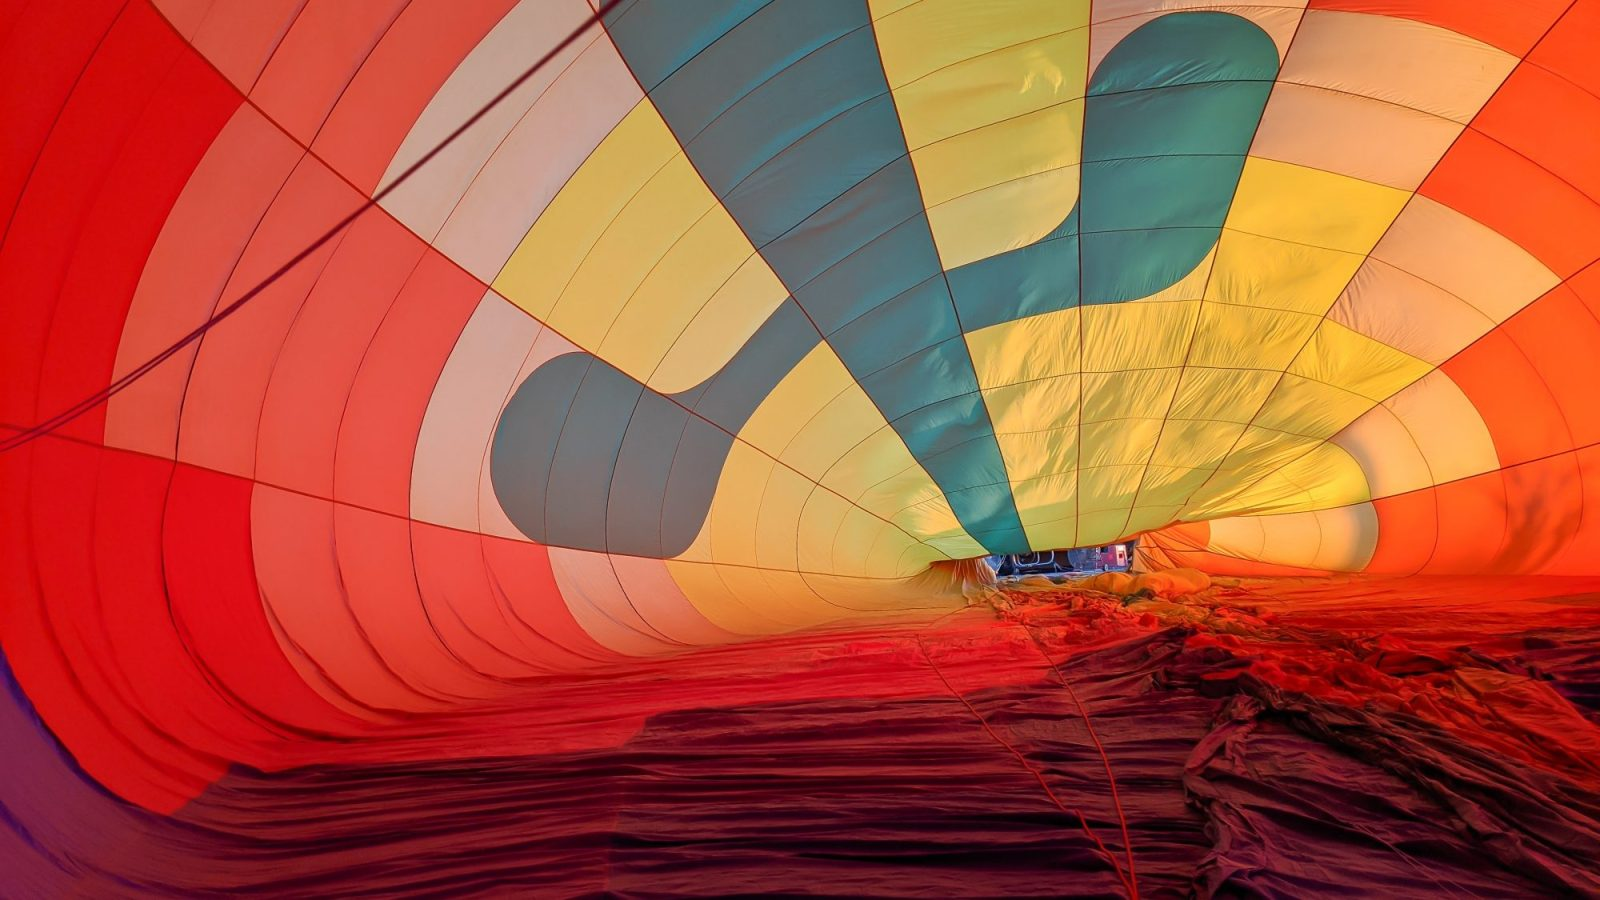 Inside the balloon as they're blowing it up | What You Need to Know for Your Sunrise Hot Air Balloon Ride in Arizona | Scottsdale and Phoenix, Arizona hot air balloon rides with Hot Air Expeditions